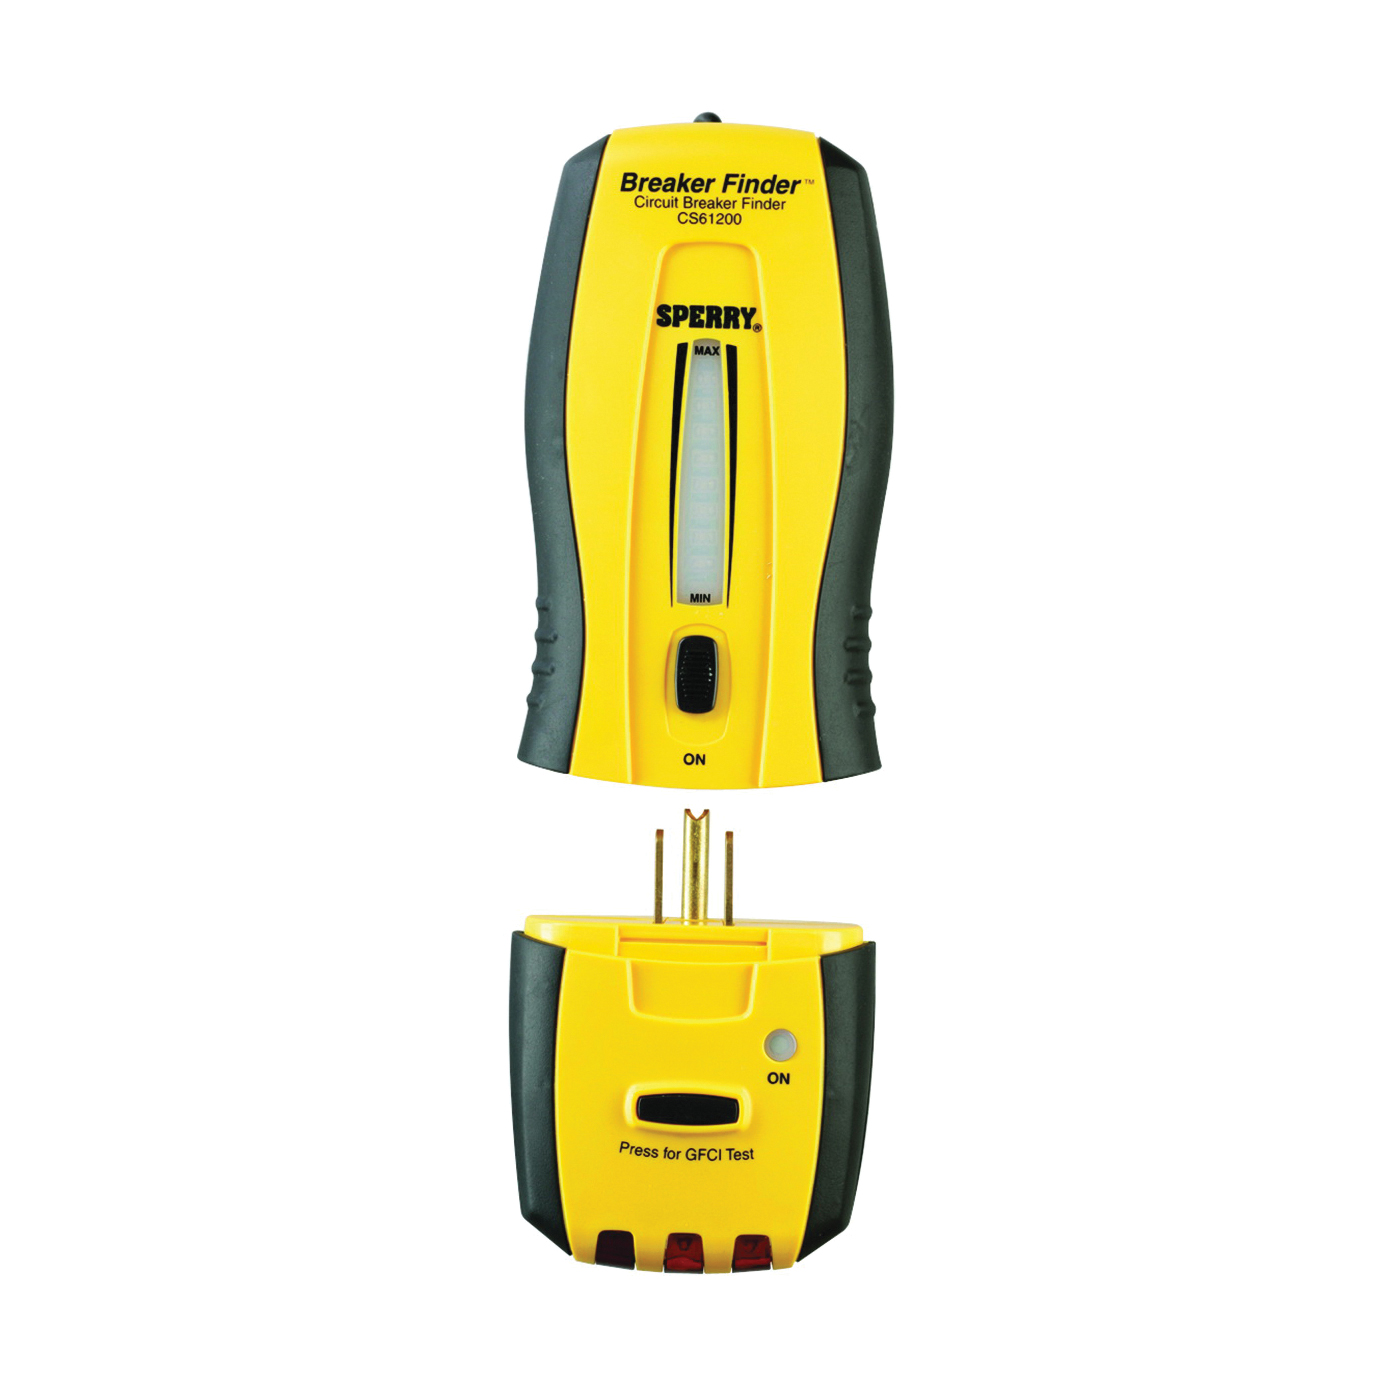 Picture of GB Breaker Finder CS61200 Circuit Breaker Finder/Locator and GFCI Tester, LED Display